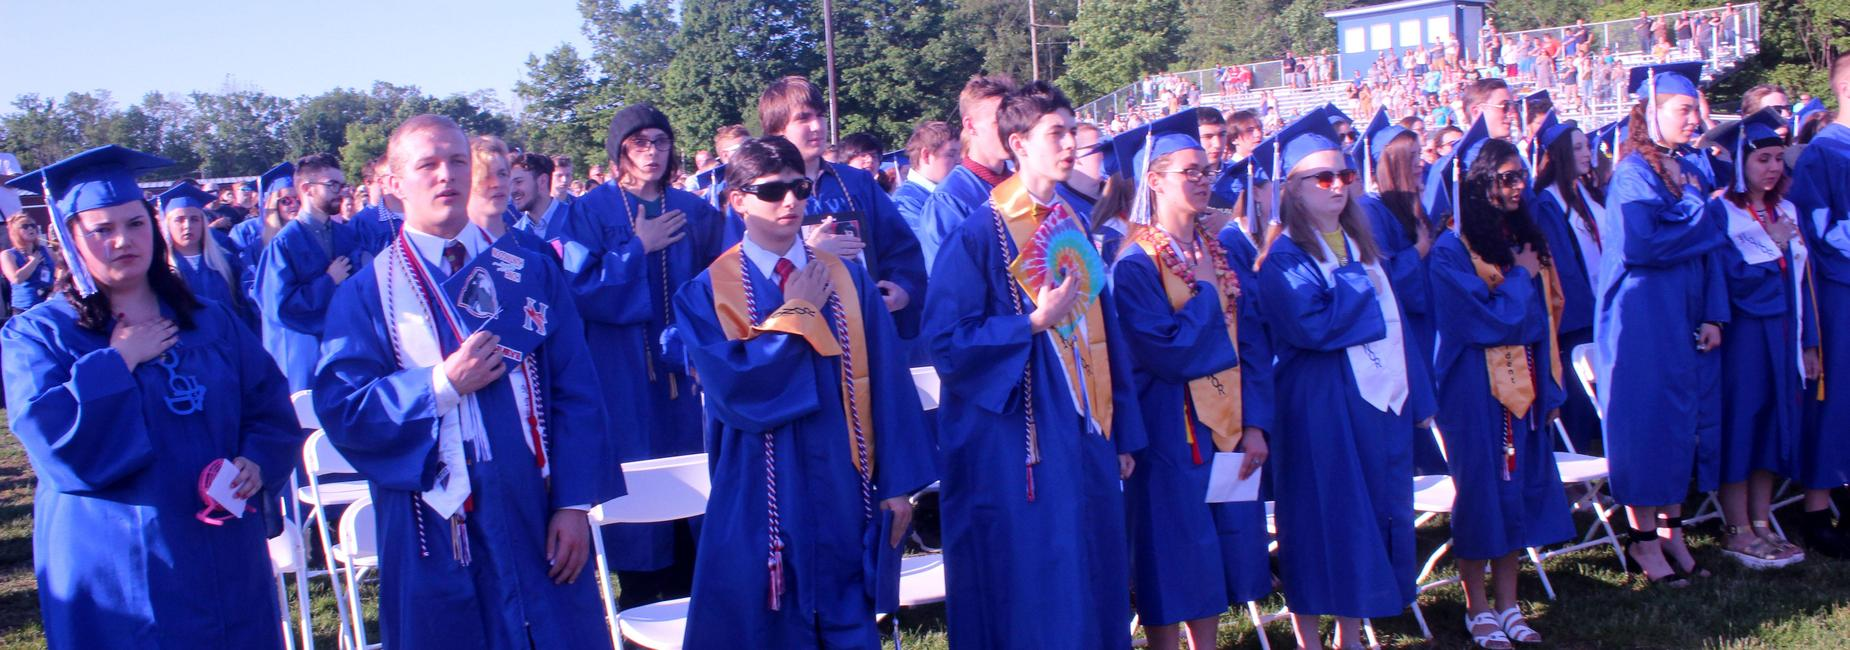 Graduation Ceremony